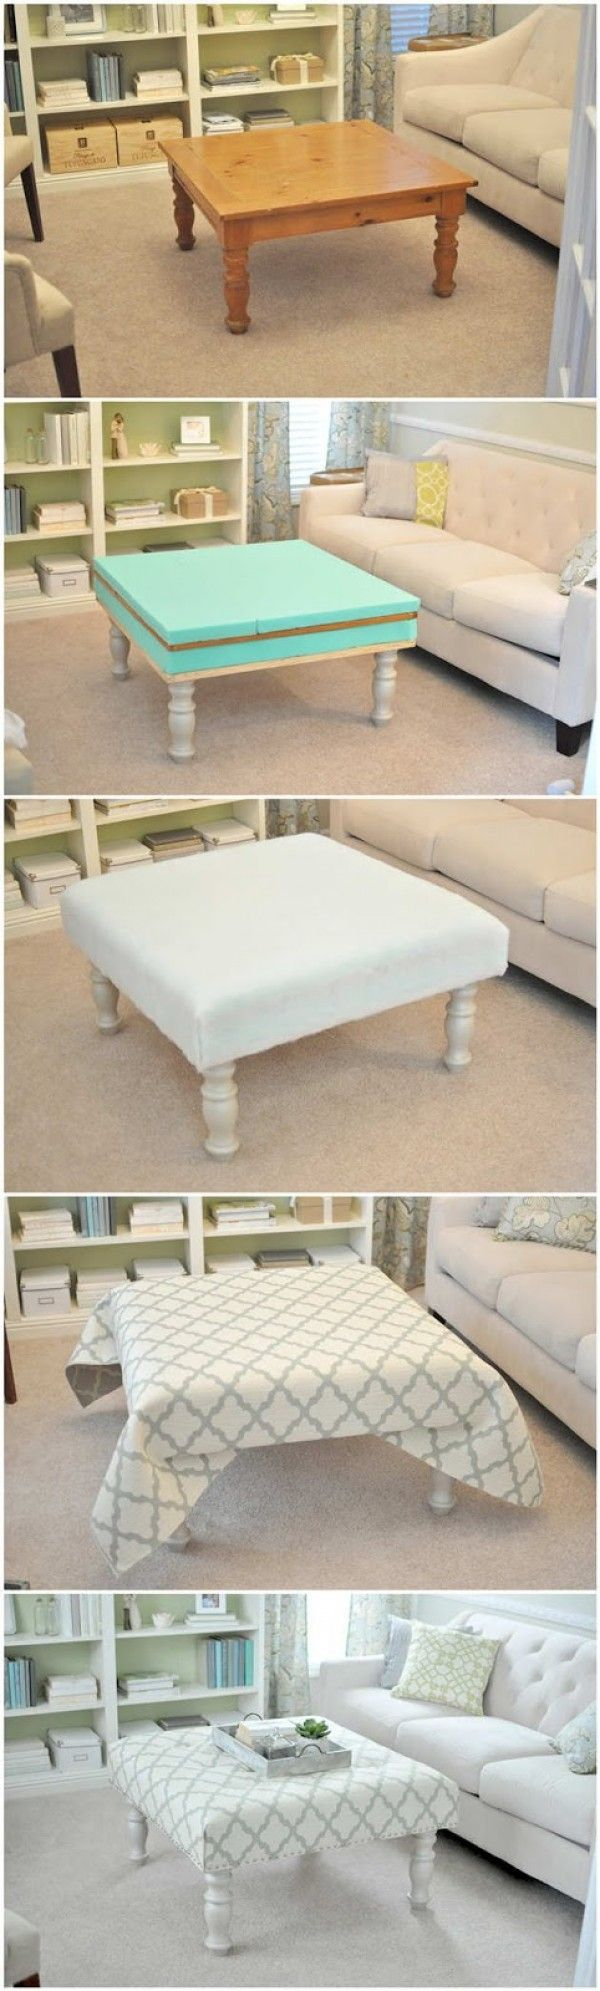 Easy diy coffee table - Best 25 Build A Coffee Table Ideas That You Will Like On Pinterest Diy Furniture Plans Wood Projects Build A Sofa And Farmhouse Decor